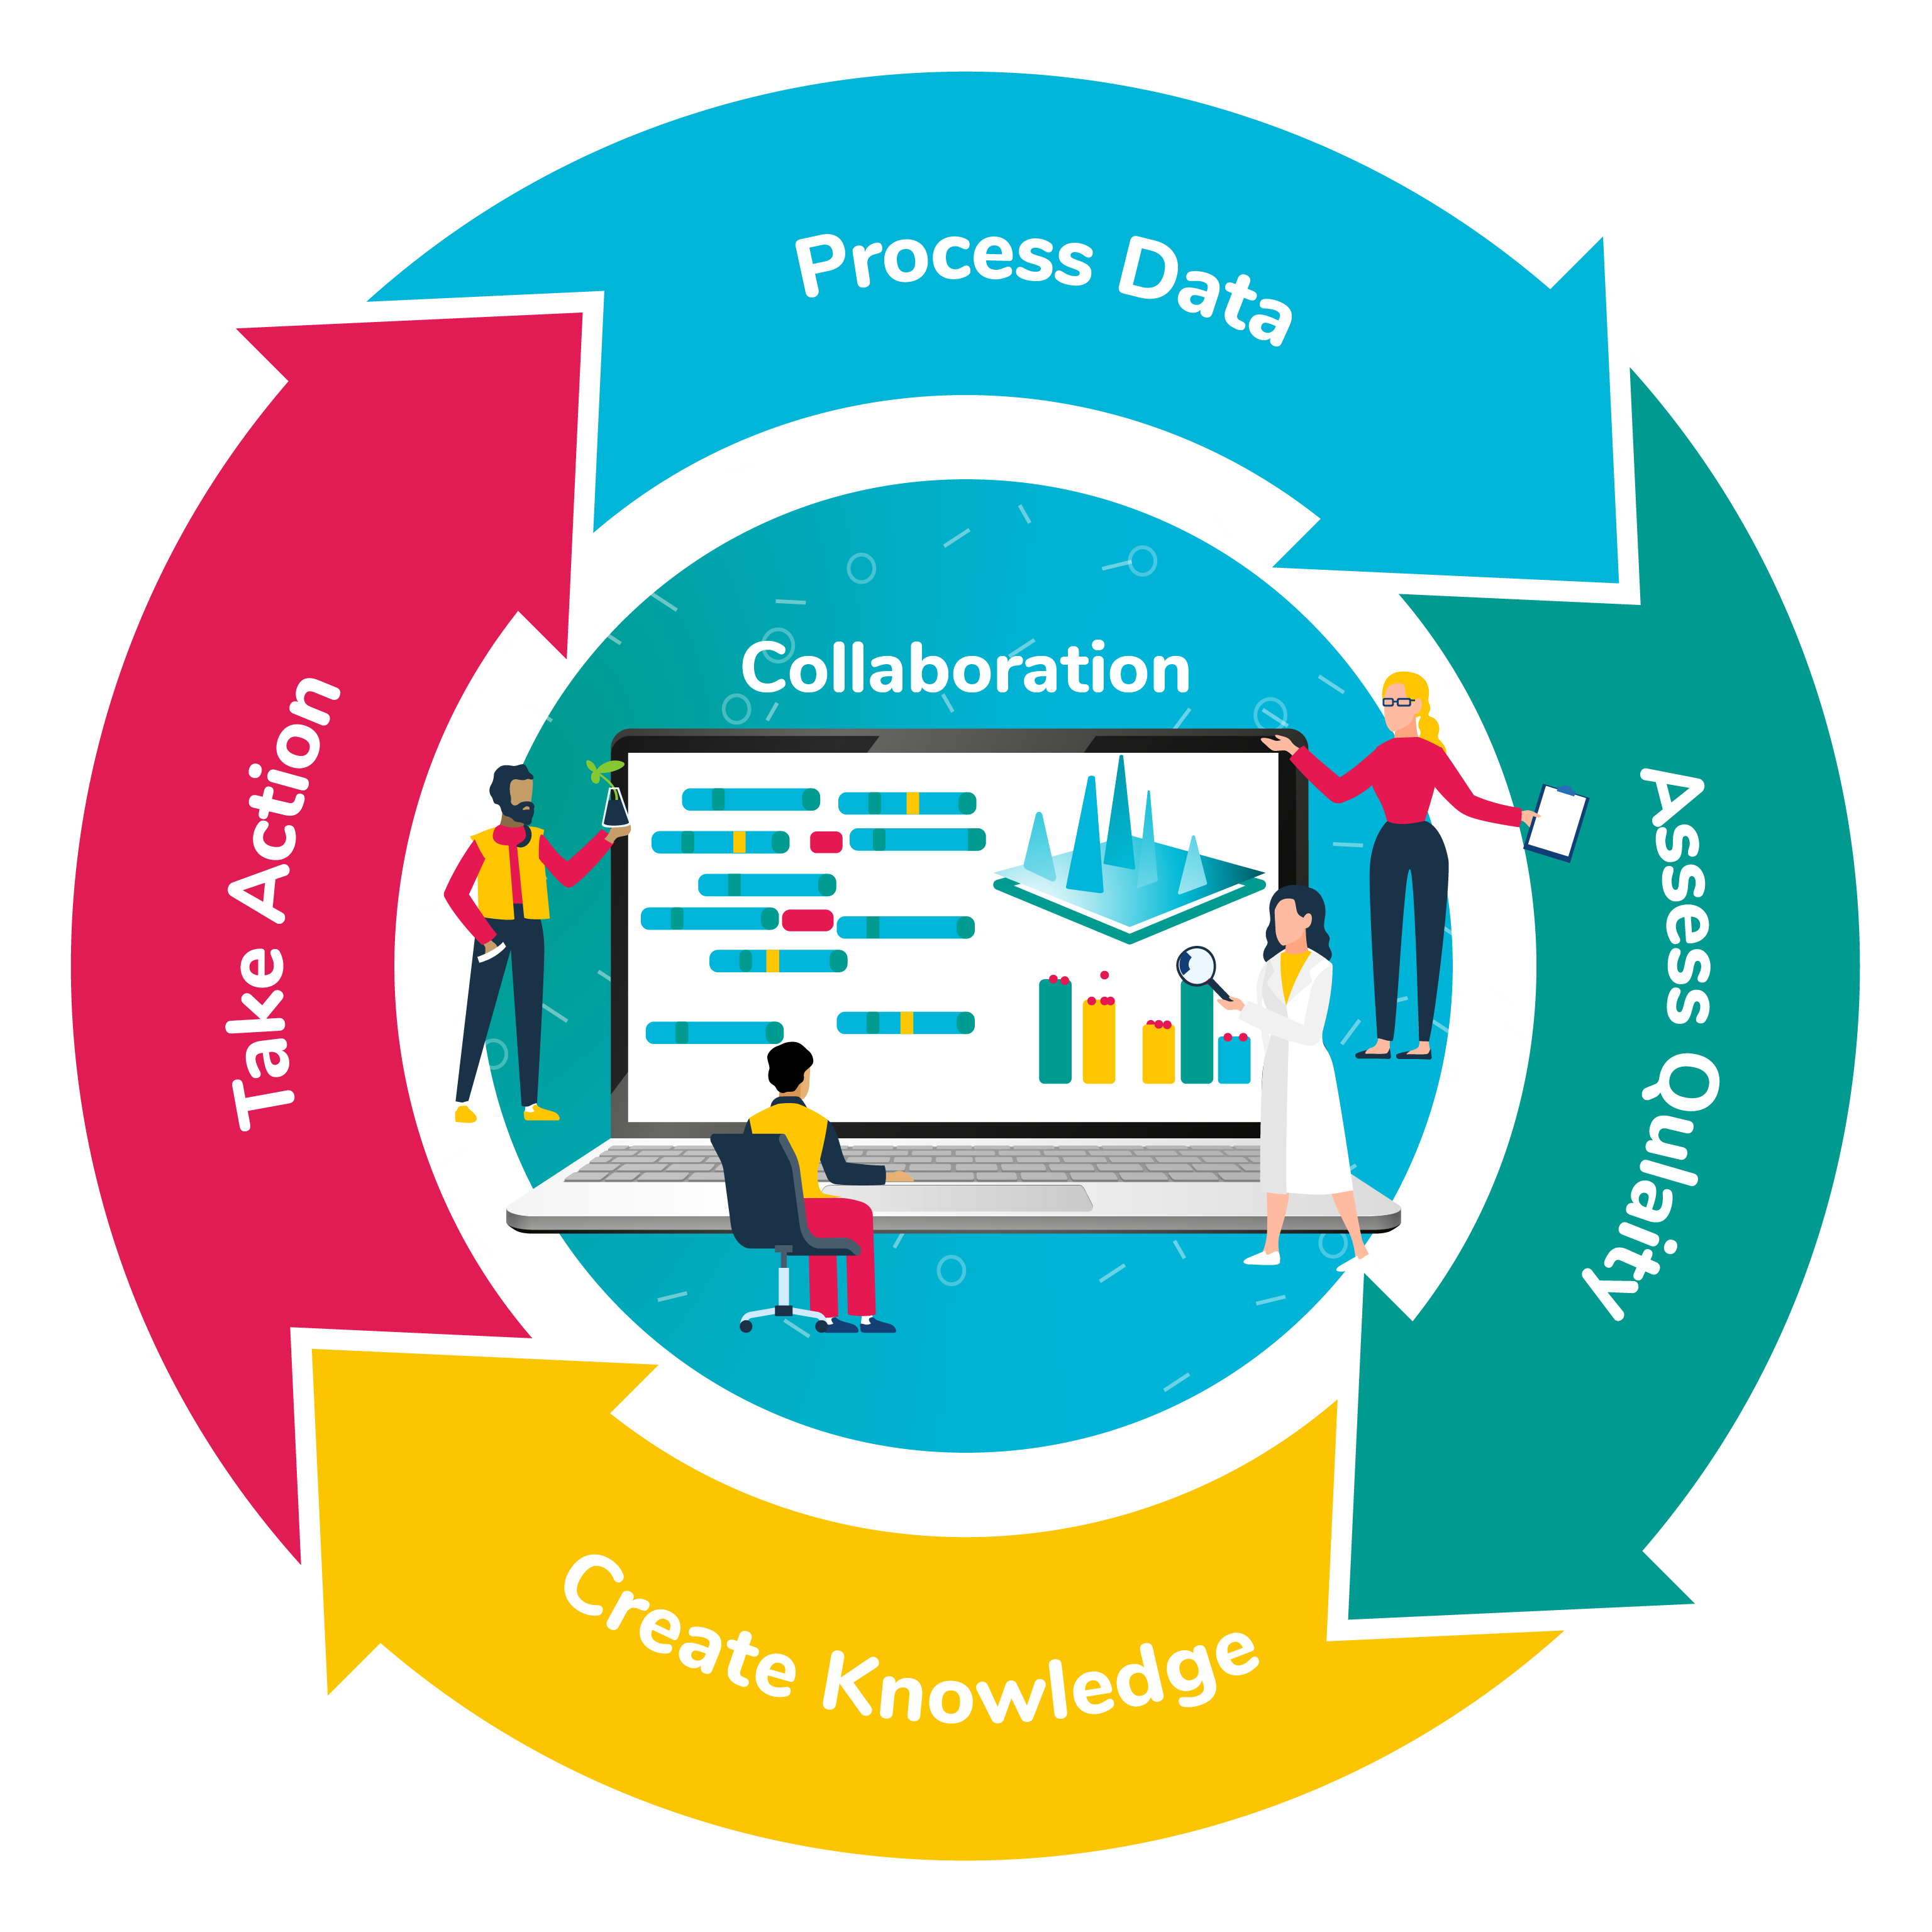 4 Step Process: Process data, Assess Quality, Create Knowledge, Take Action